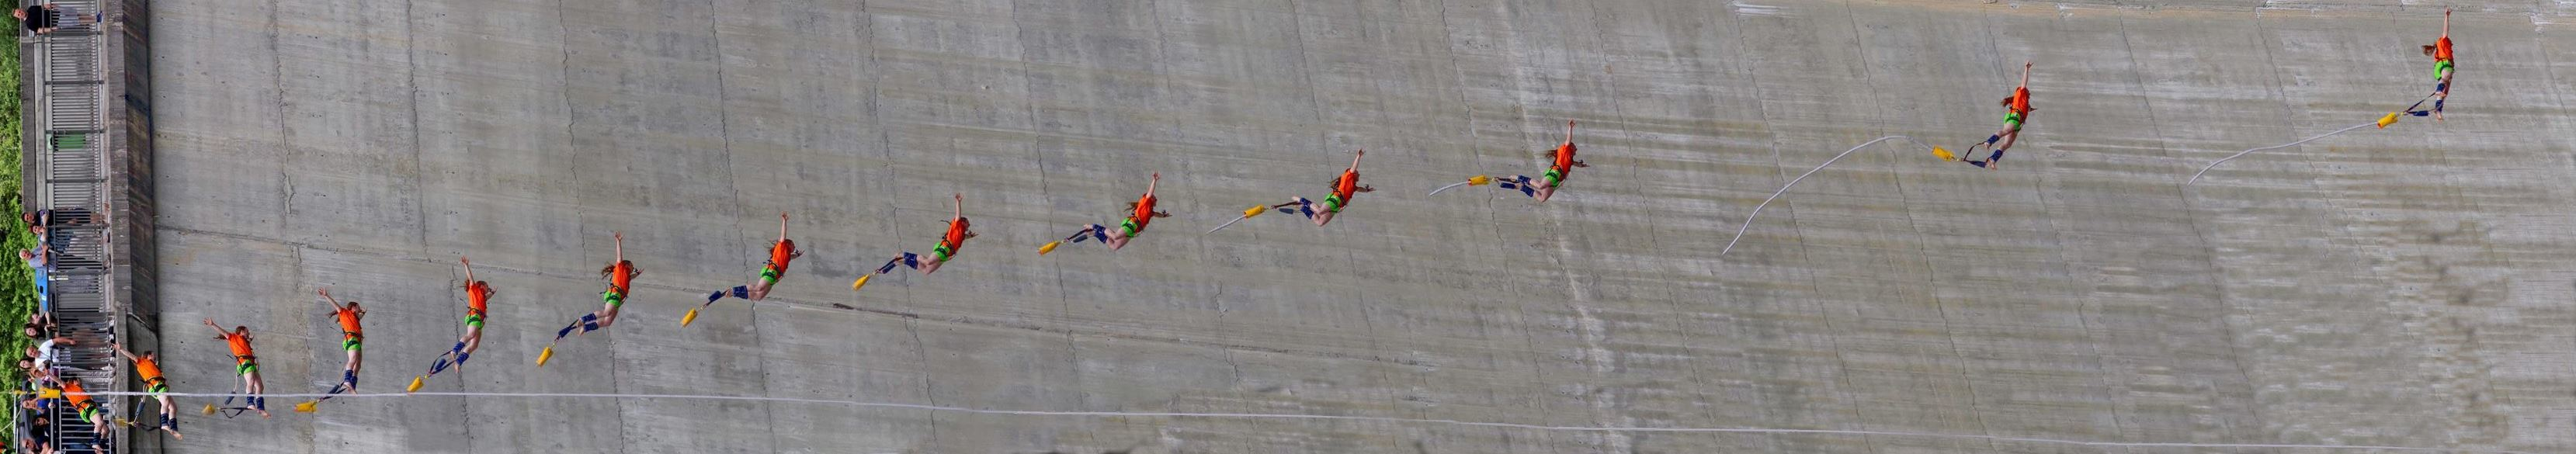 my bungee jump in the Verzasca valley, Ticino on my 35th birthday